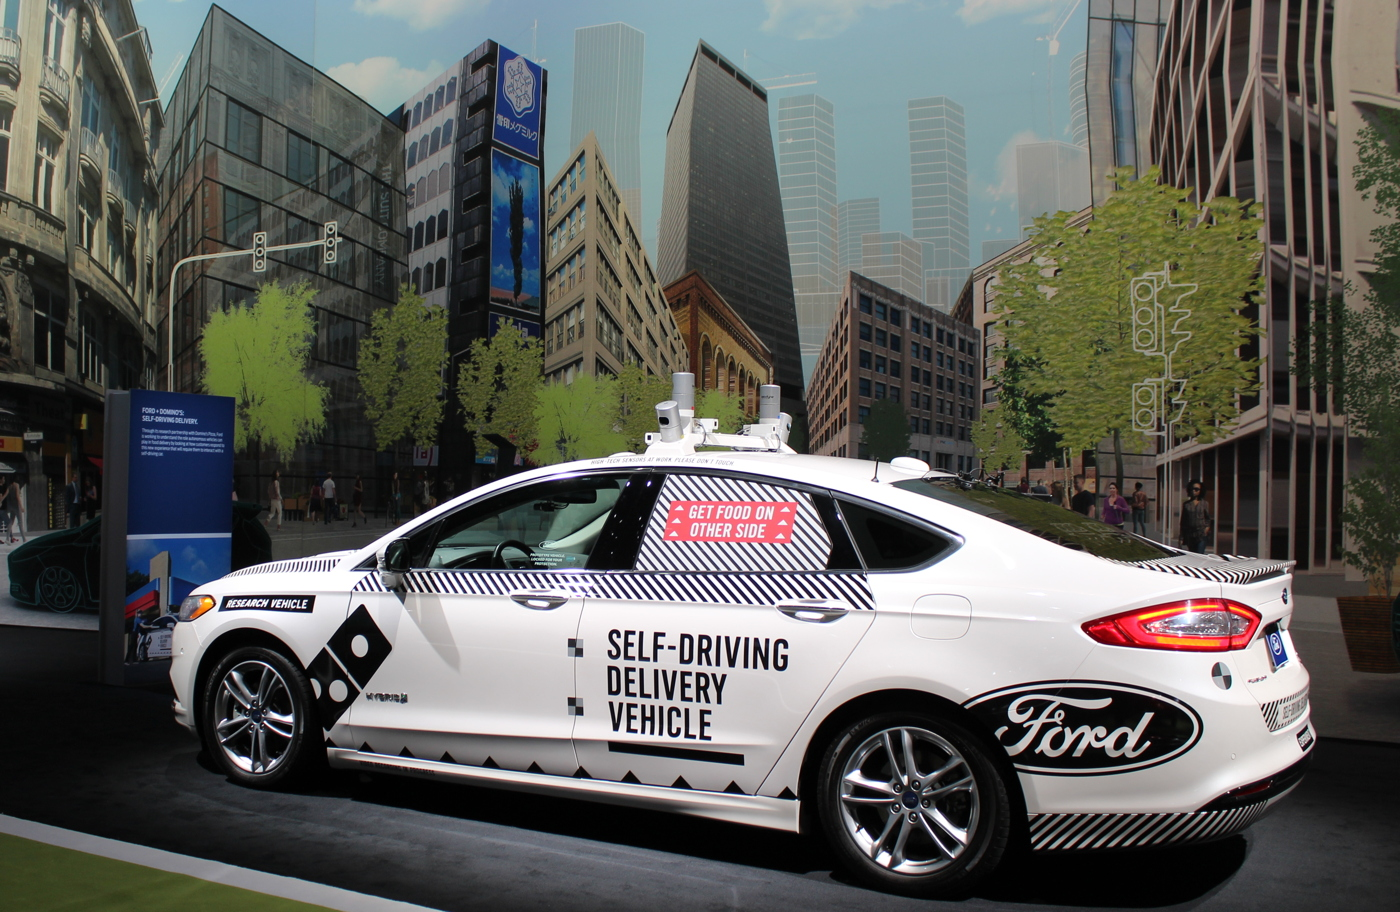 Ford Fusion Self-Driving Delivery Prototype